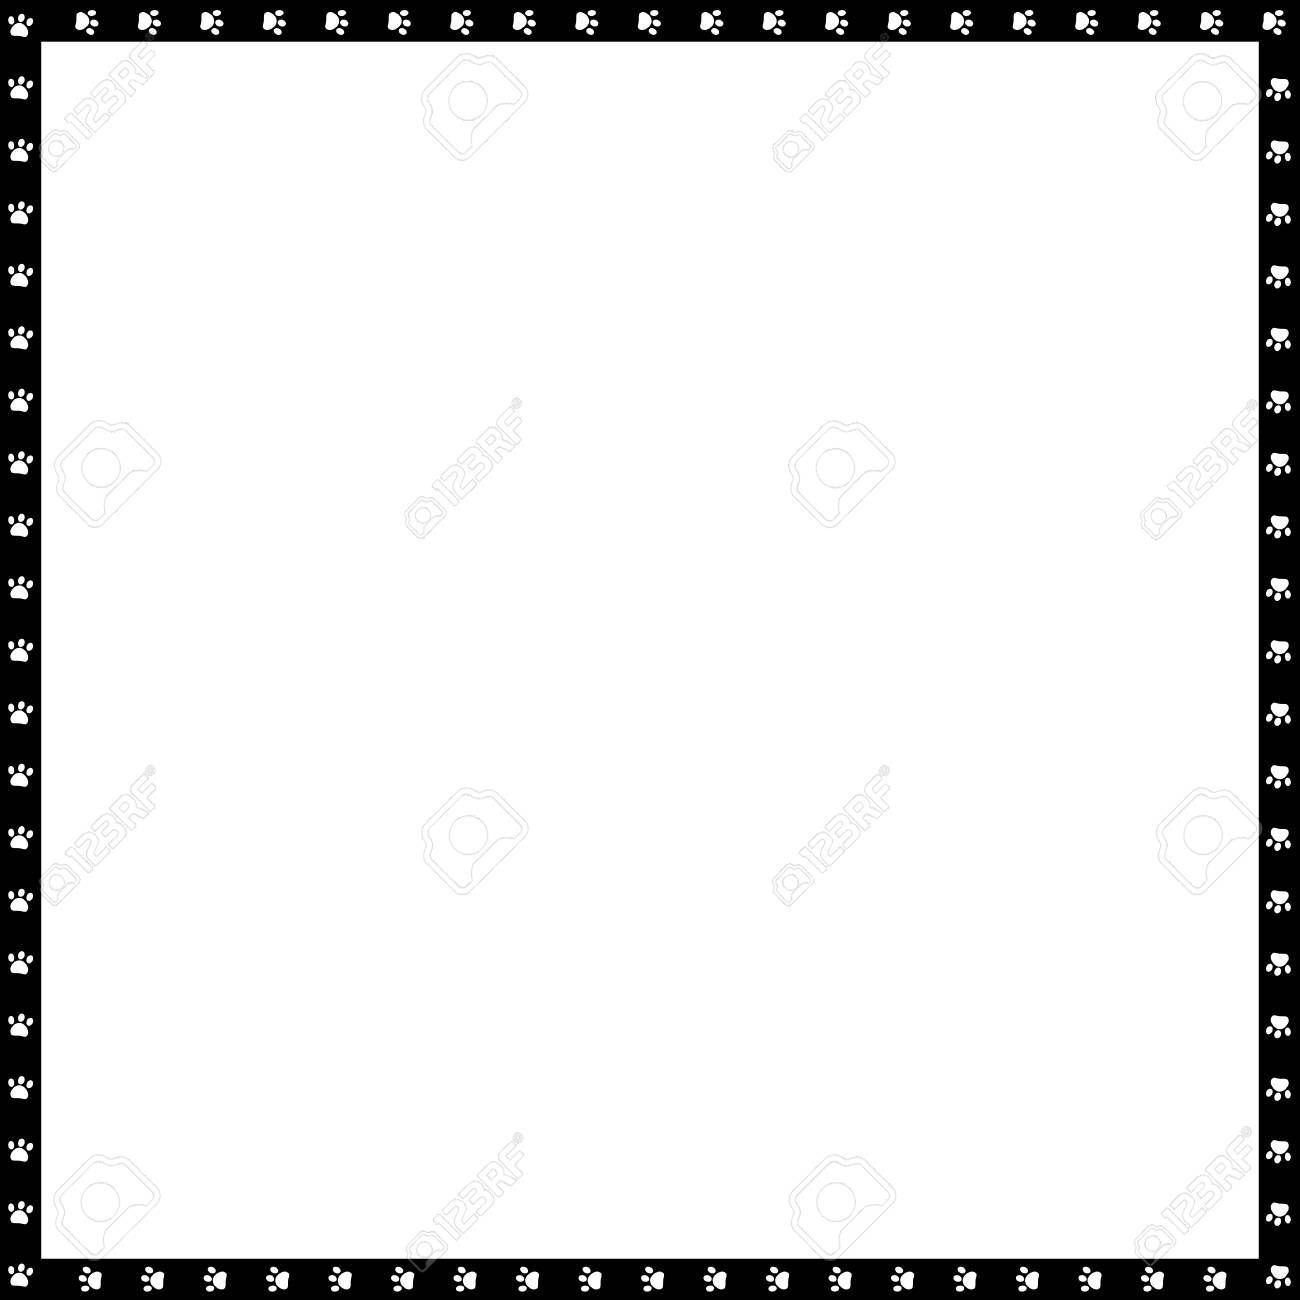 Vector black and white square border made of animal paw prints isolated on white background. Copy space template, border, framework, photo frame, poster, banner, cats or dogs paws walking track. - 117006950